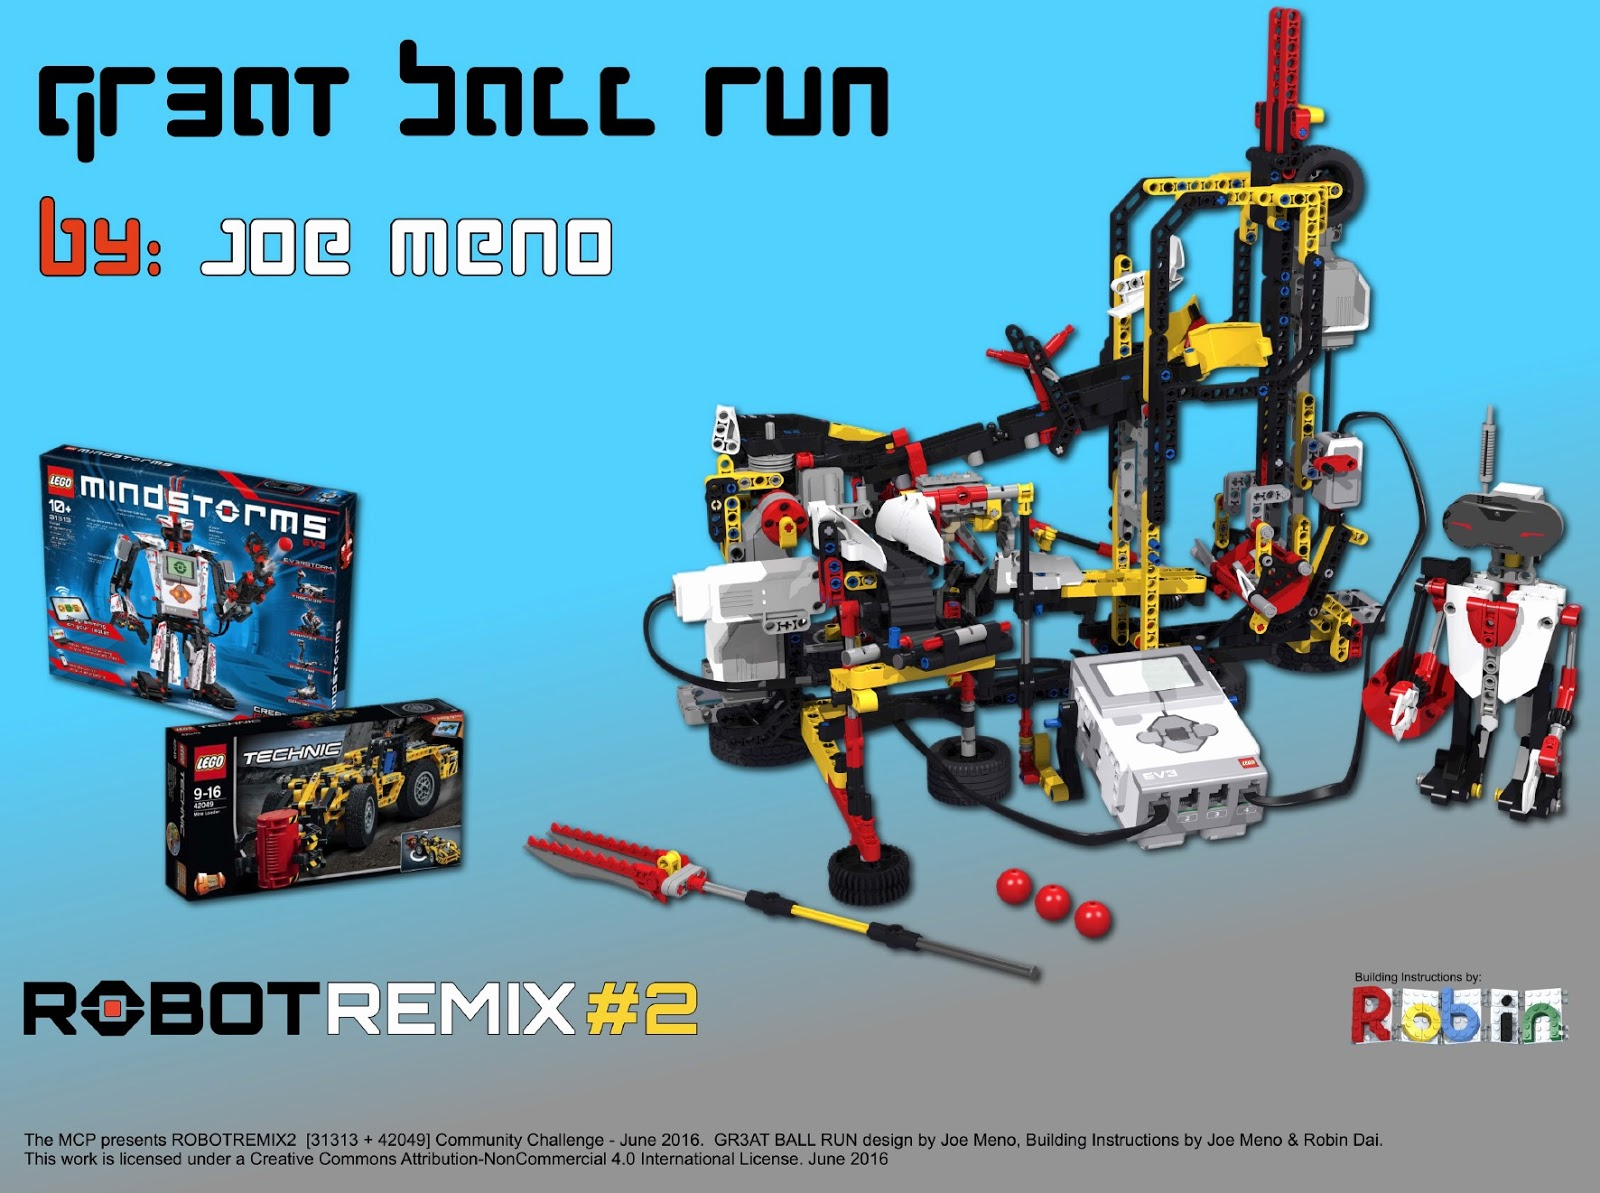 ROBOTREMIX2 - BUILDING INSTRUCTIONS 3 of 4 - GR3AT Ball Run | The